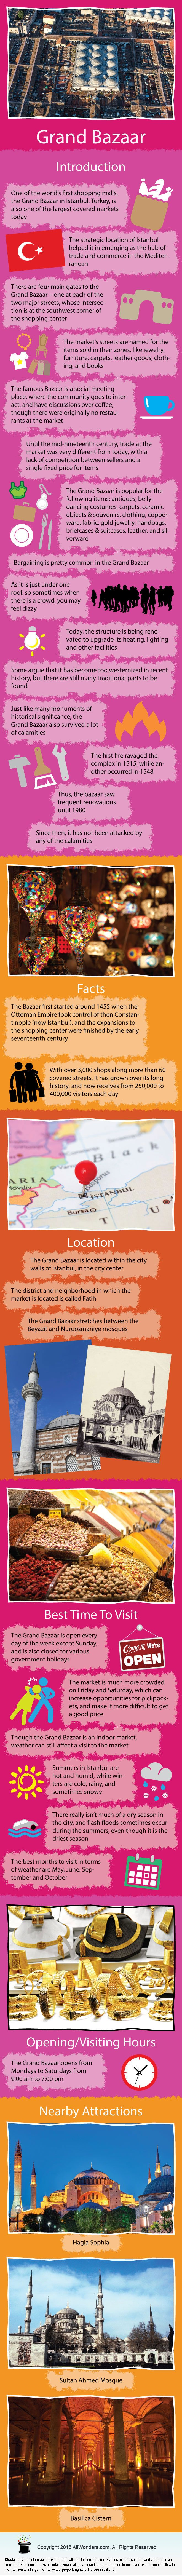 Infographic showing facts and information about Grand Bazaar in Istanbul, Turkey. Know about its Location, Best time to visit, nearby attractions and more